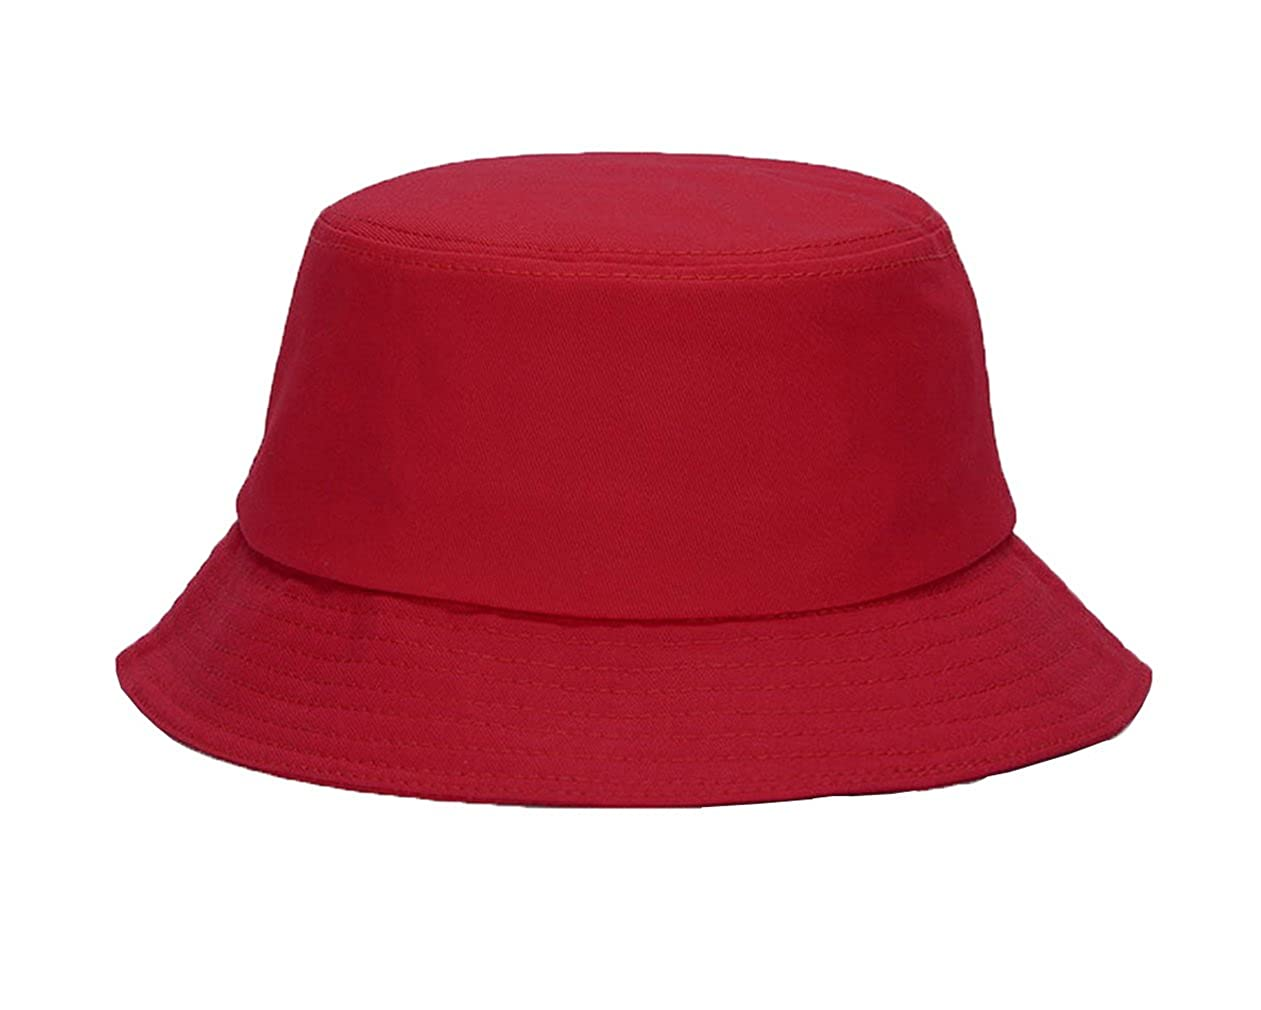 COMVIP Unisex Casual Cotton Plain Brim Sun Proction Summer Bucket Hat 7HAT039B*1$EE